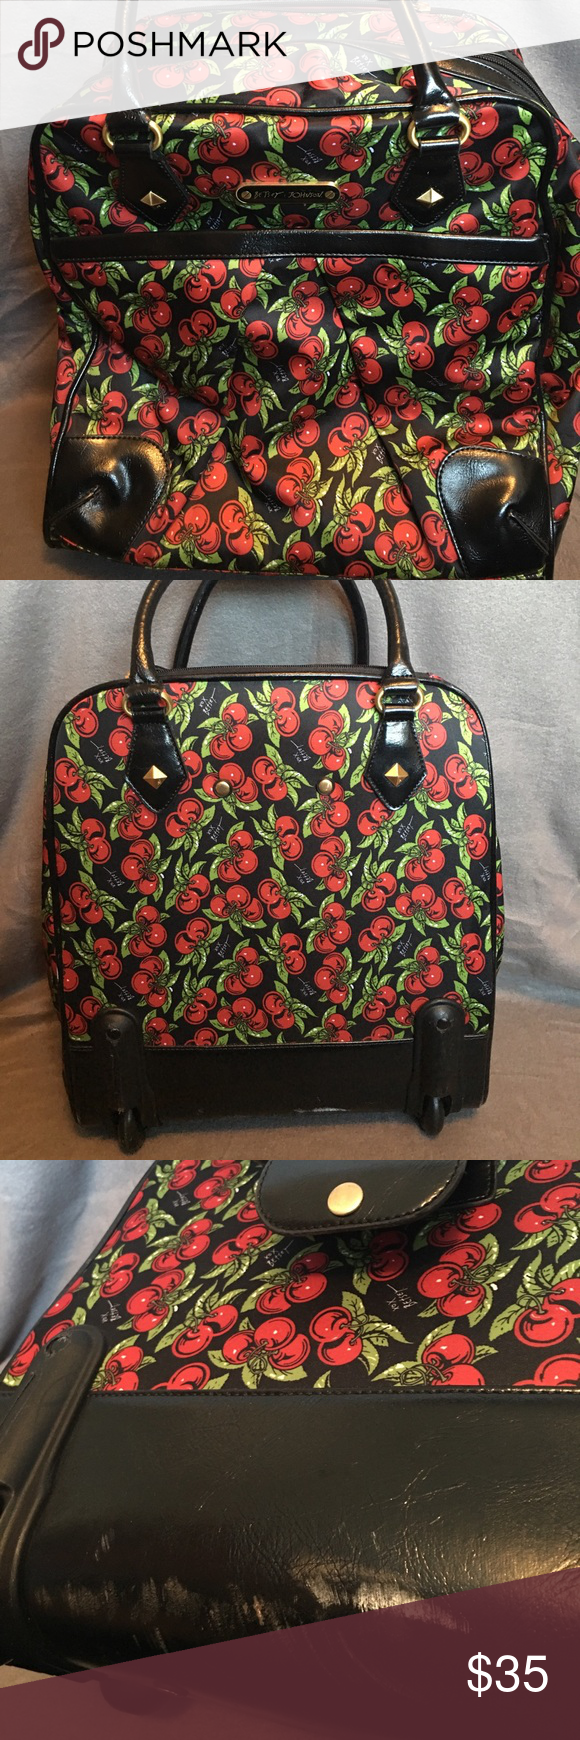 BETSEY JOHNSON ROLLER Great small rolling bag. Looks brand new except for the scuffs on the back side Betsey Johnson Bags Travel Bags